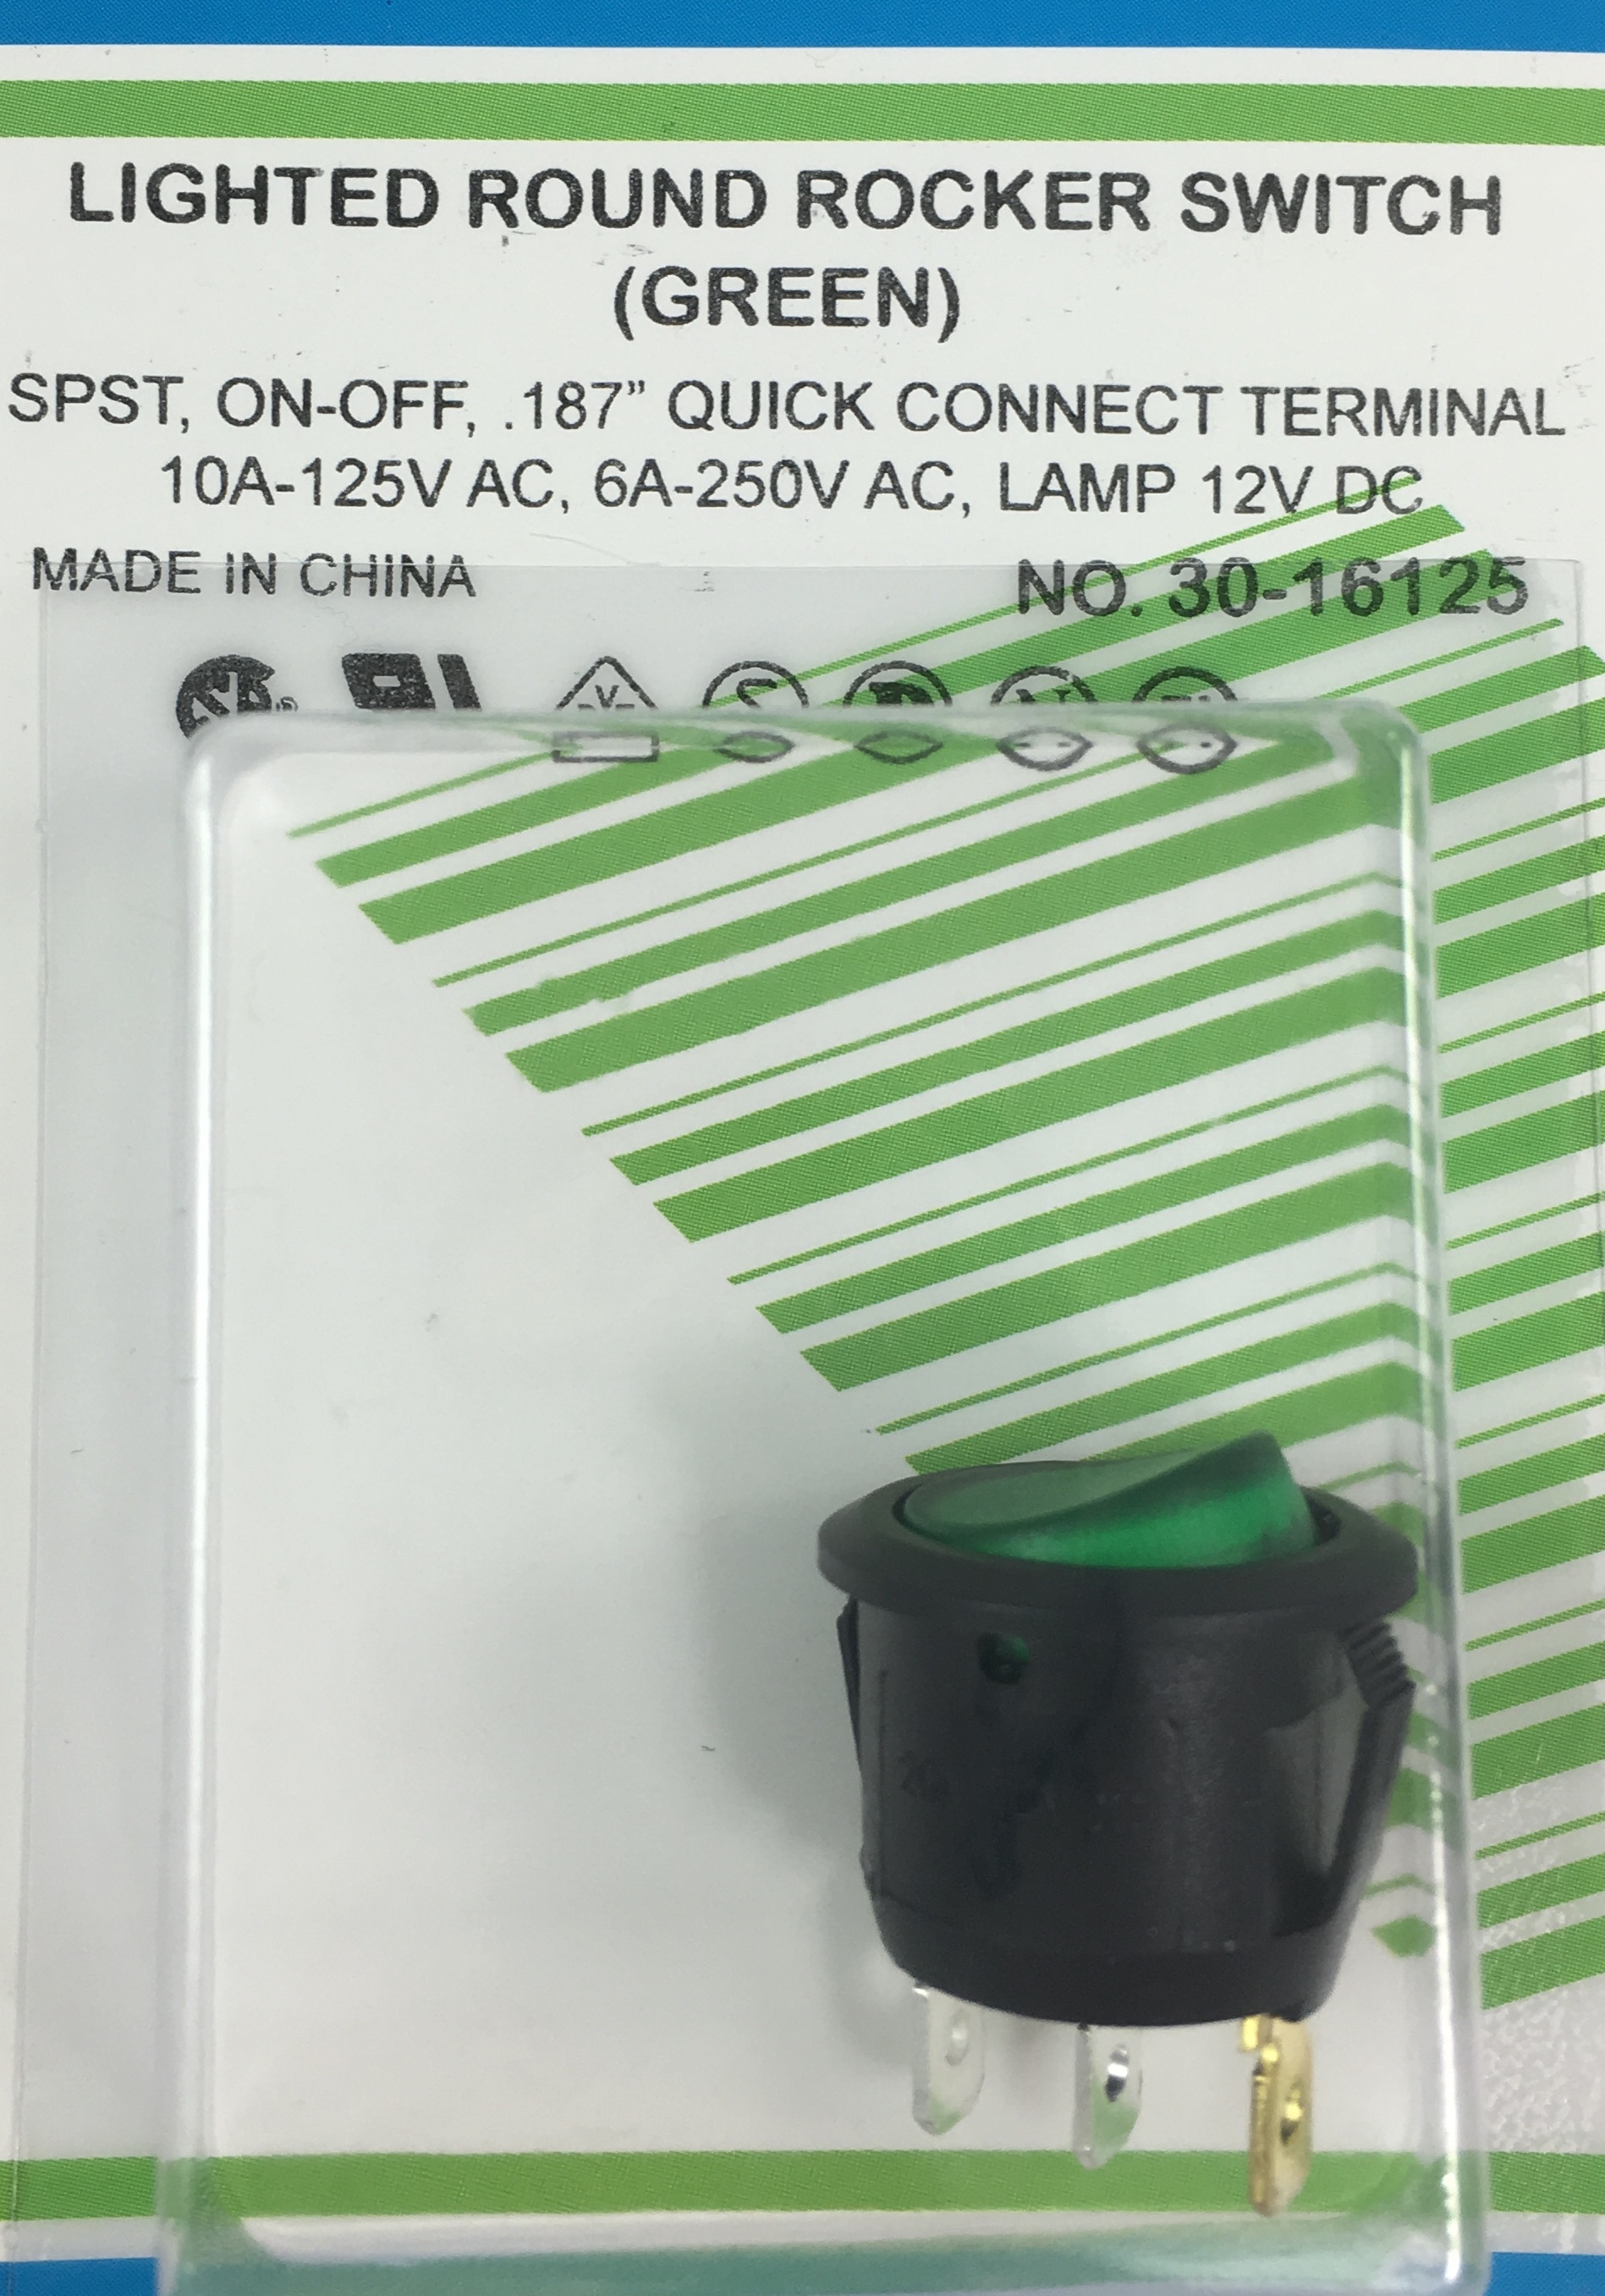 Orvac Electronics Round Rocker Spst Switch Switches Relays 12vdc Green Lighted Snap In On Off